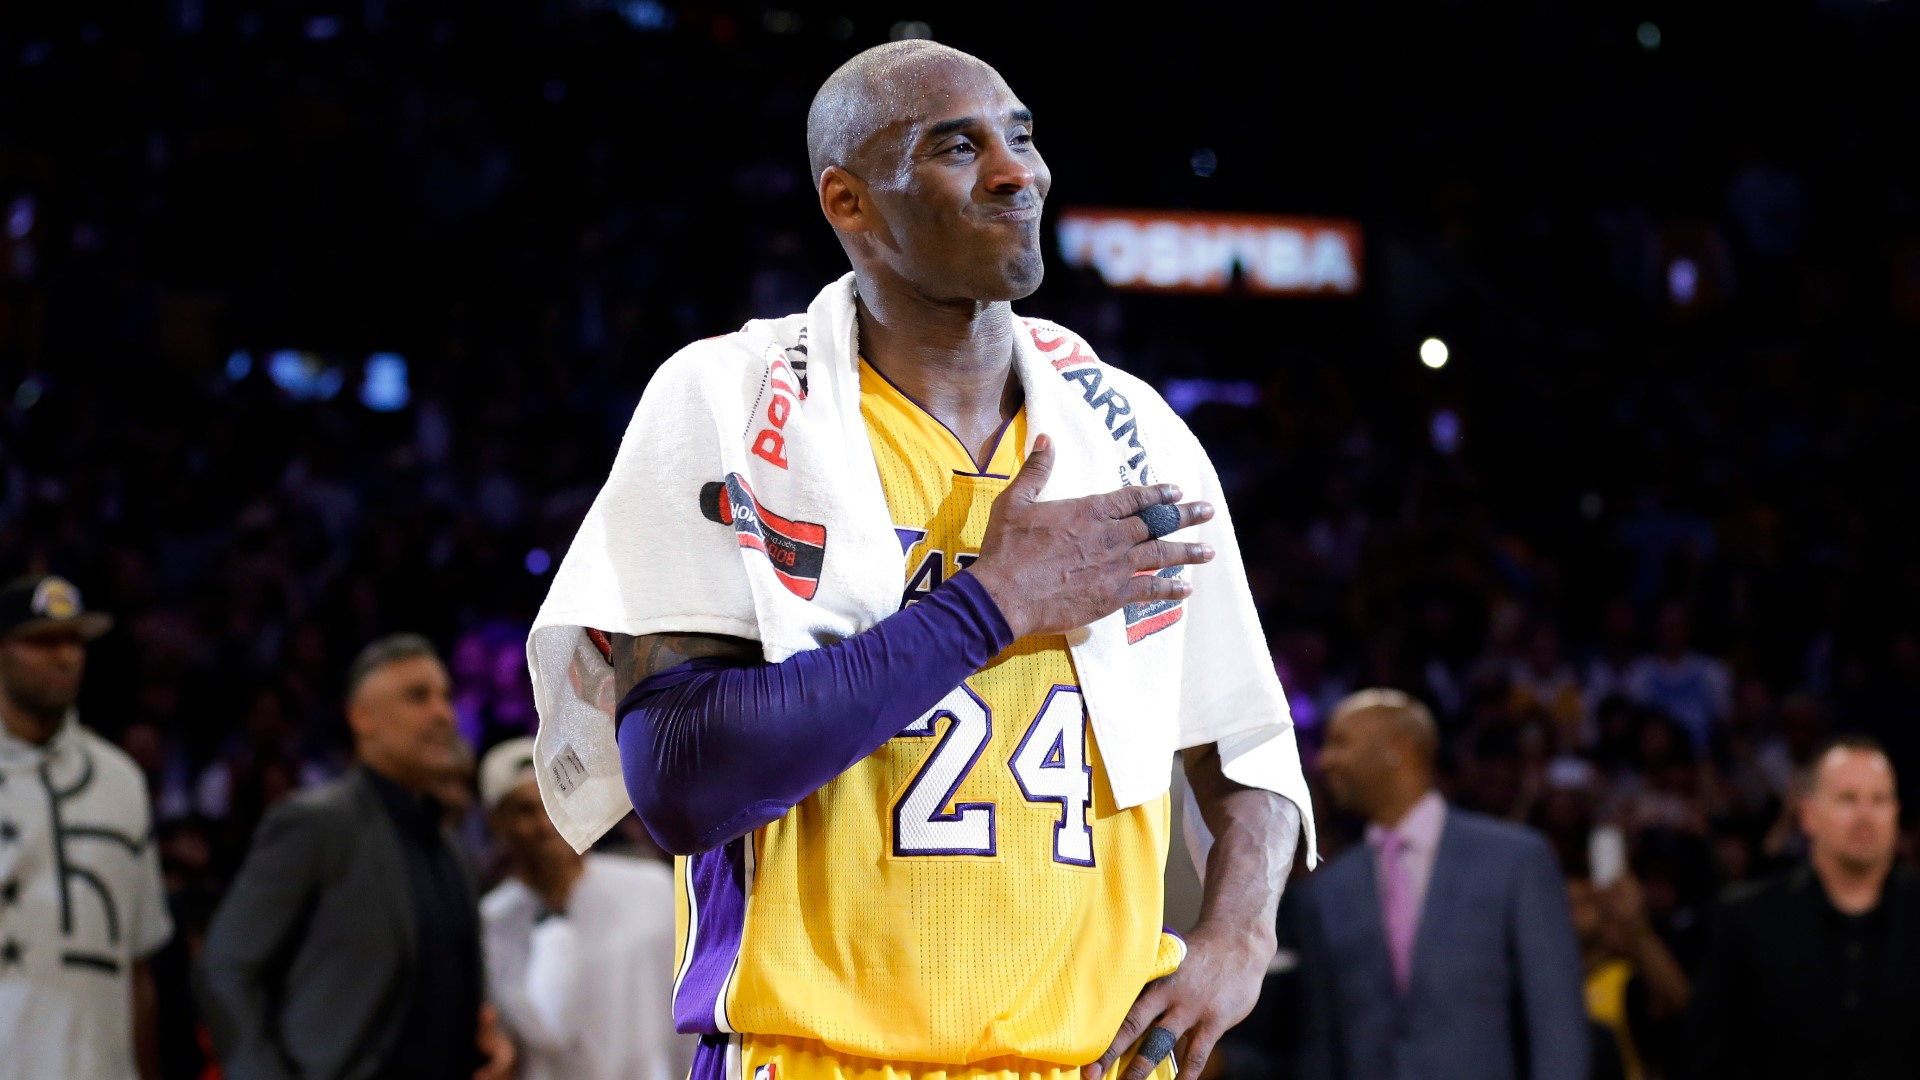 Los Angeles Lakers' Kobe Bryant pounds his chest after the last NBA basketball game of his career